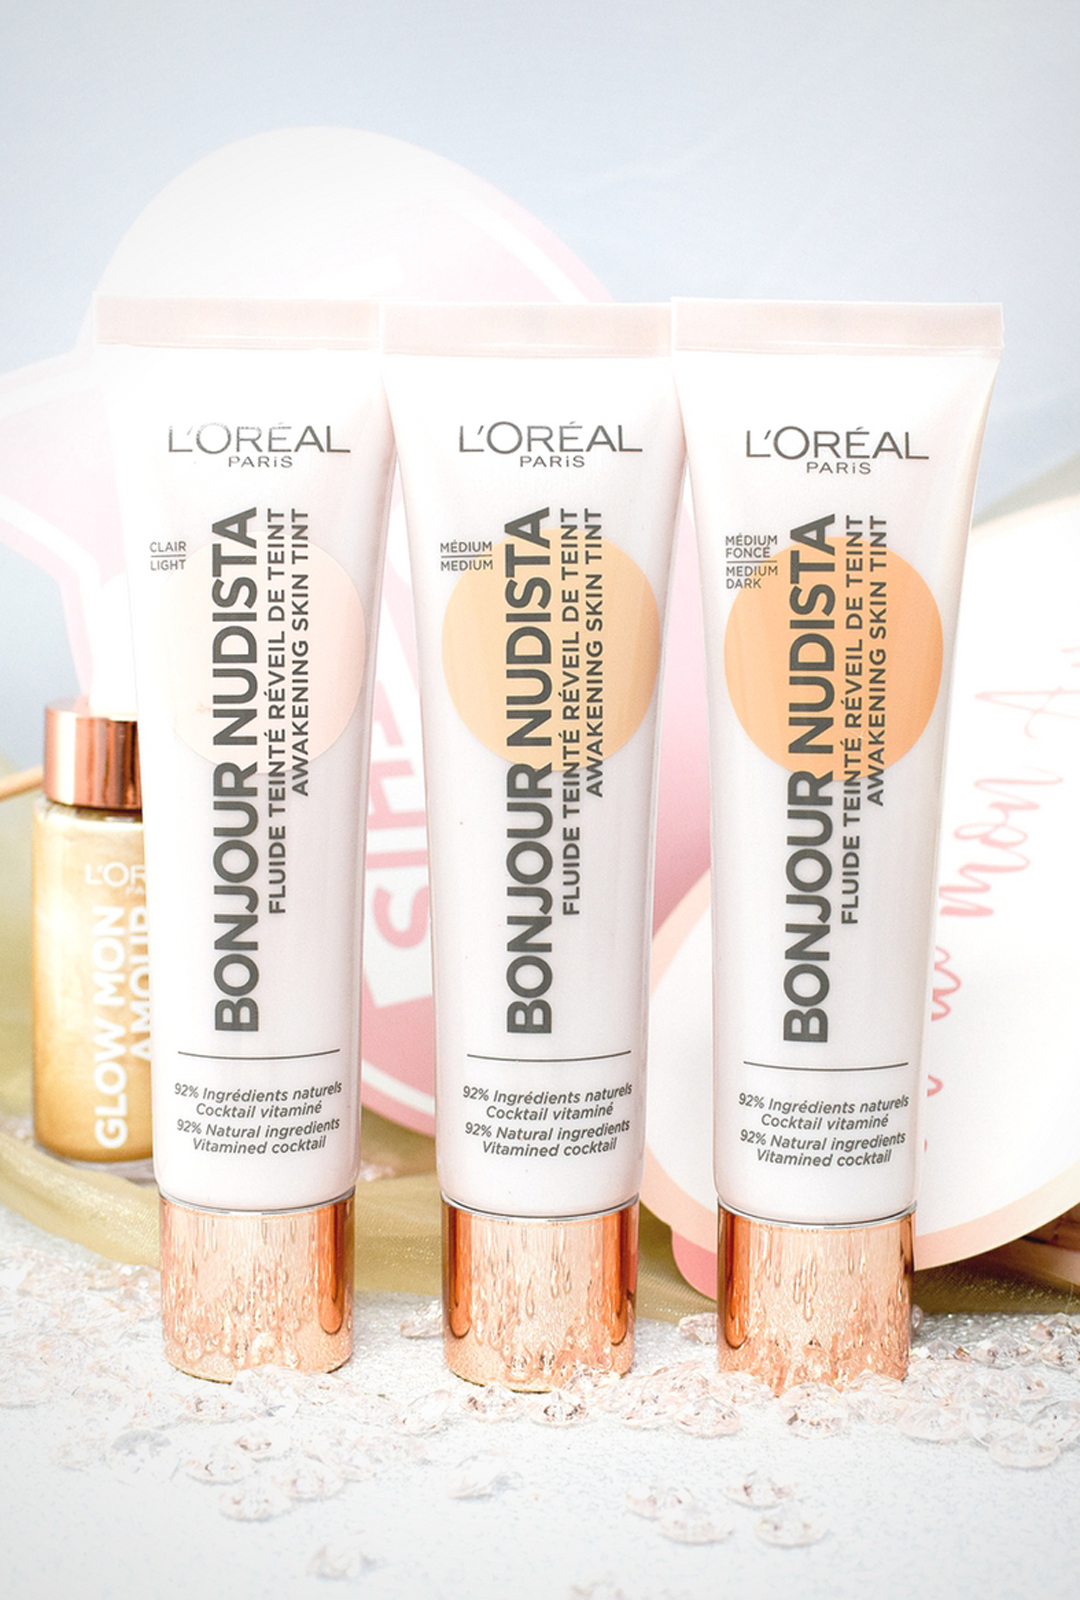 L'Oréal Paris Bonjour Nudista Awakening Skin Tint, BB Cream, Review, Swatch